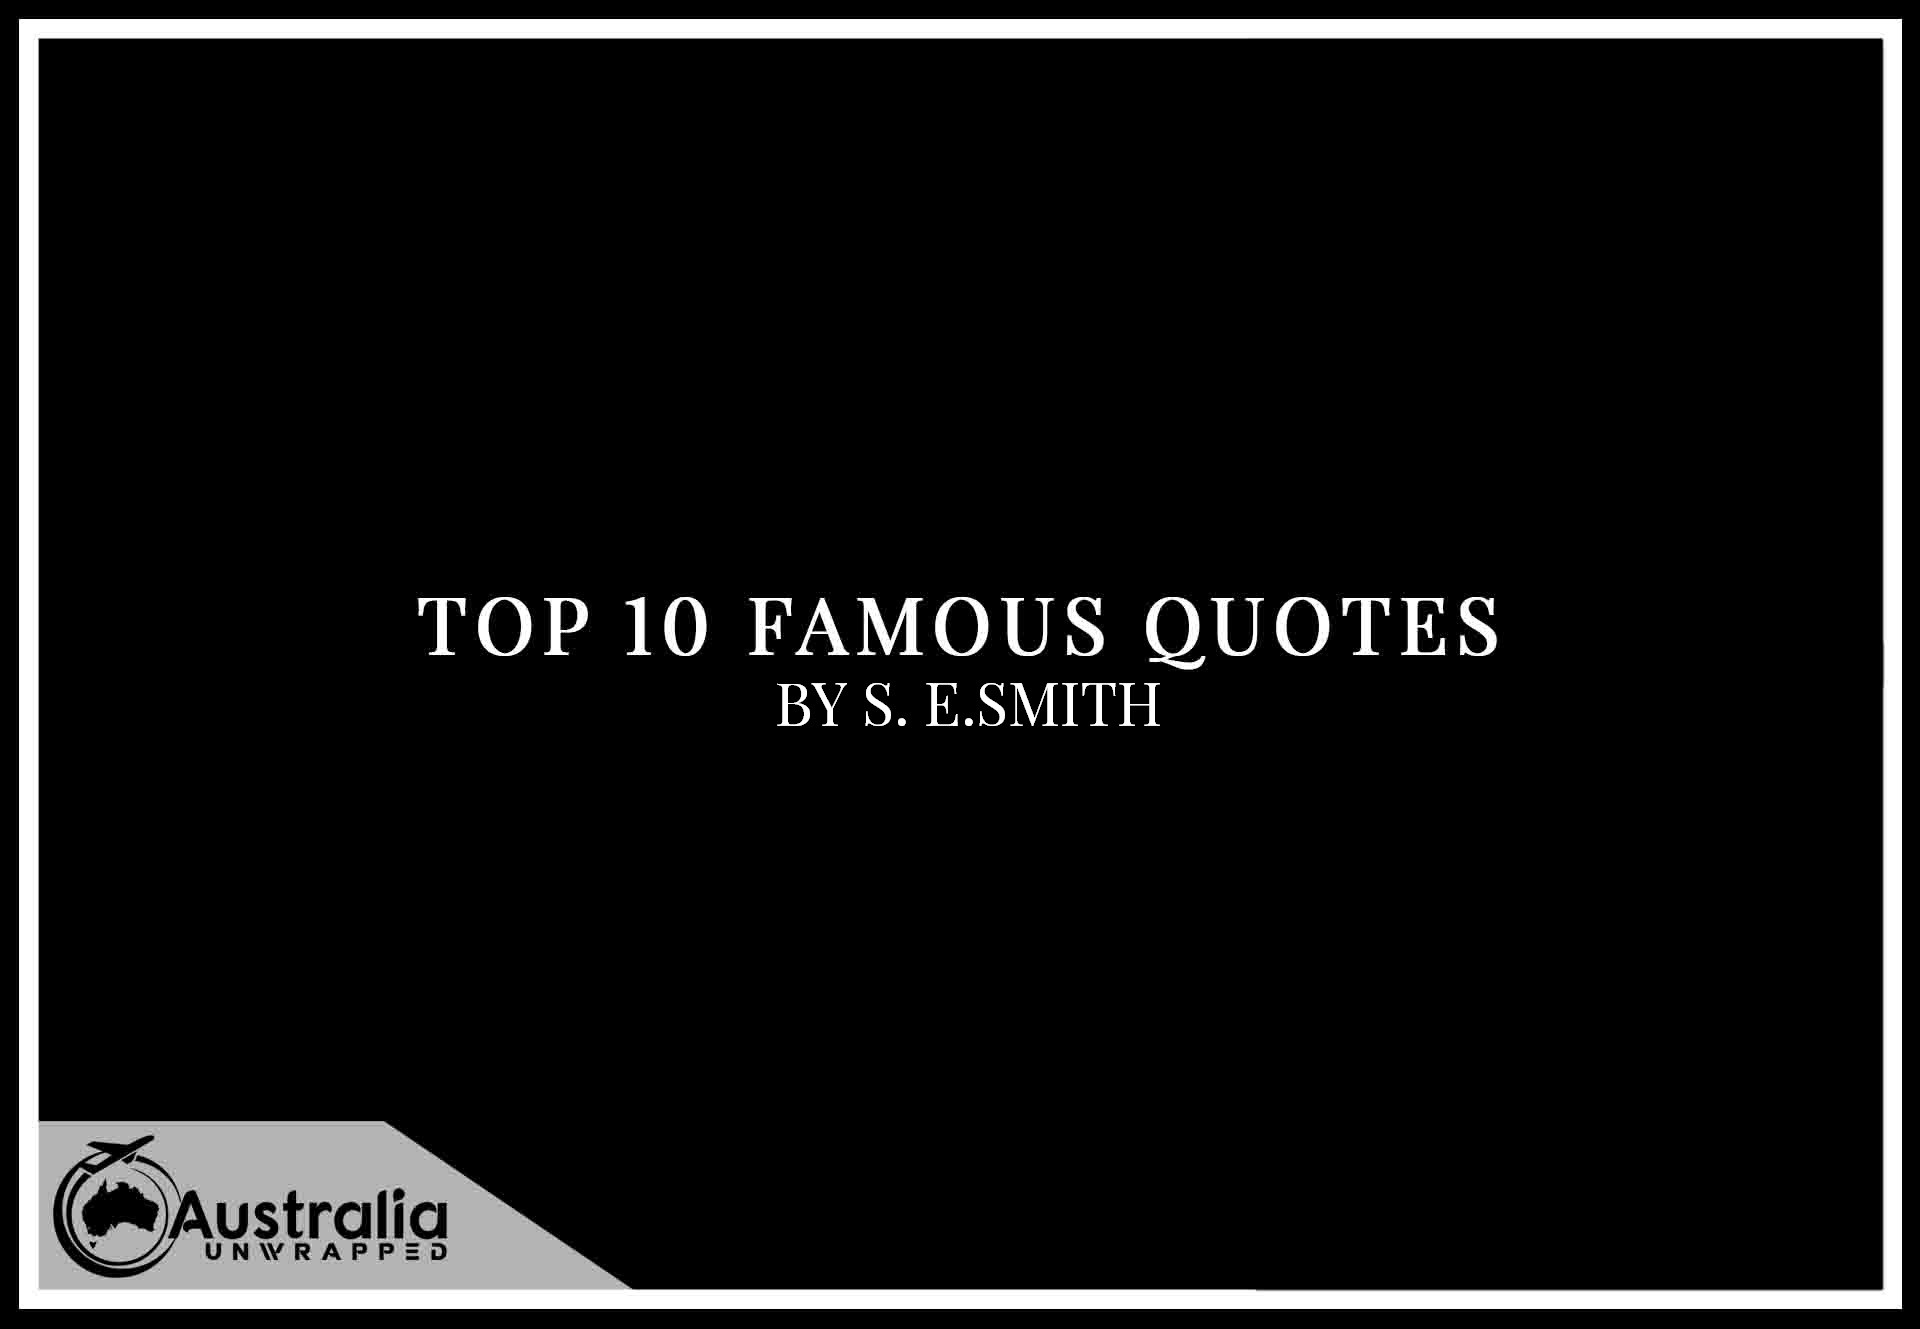 Top 10 Famous Quotes by Author S.E. Smith